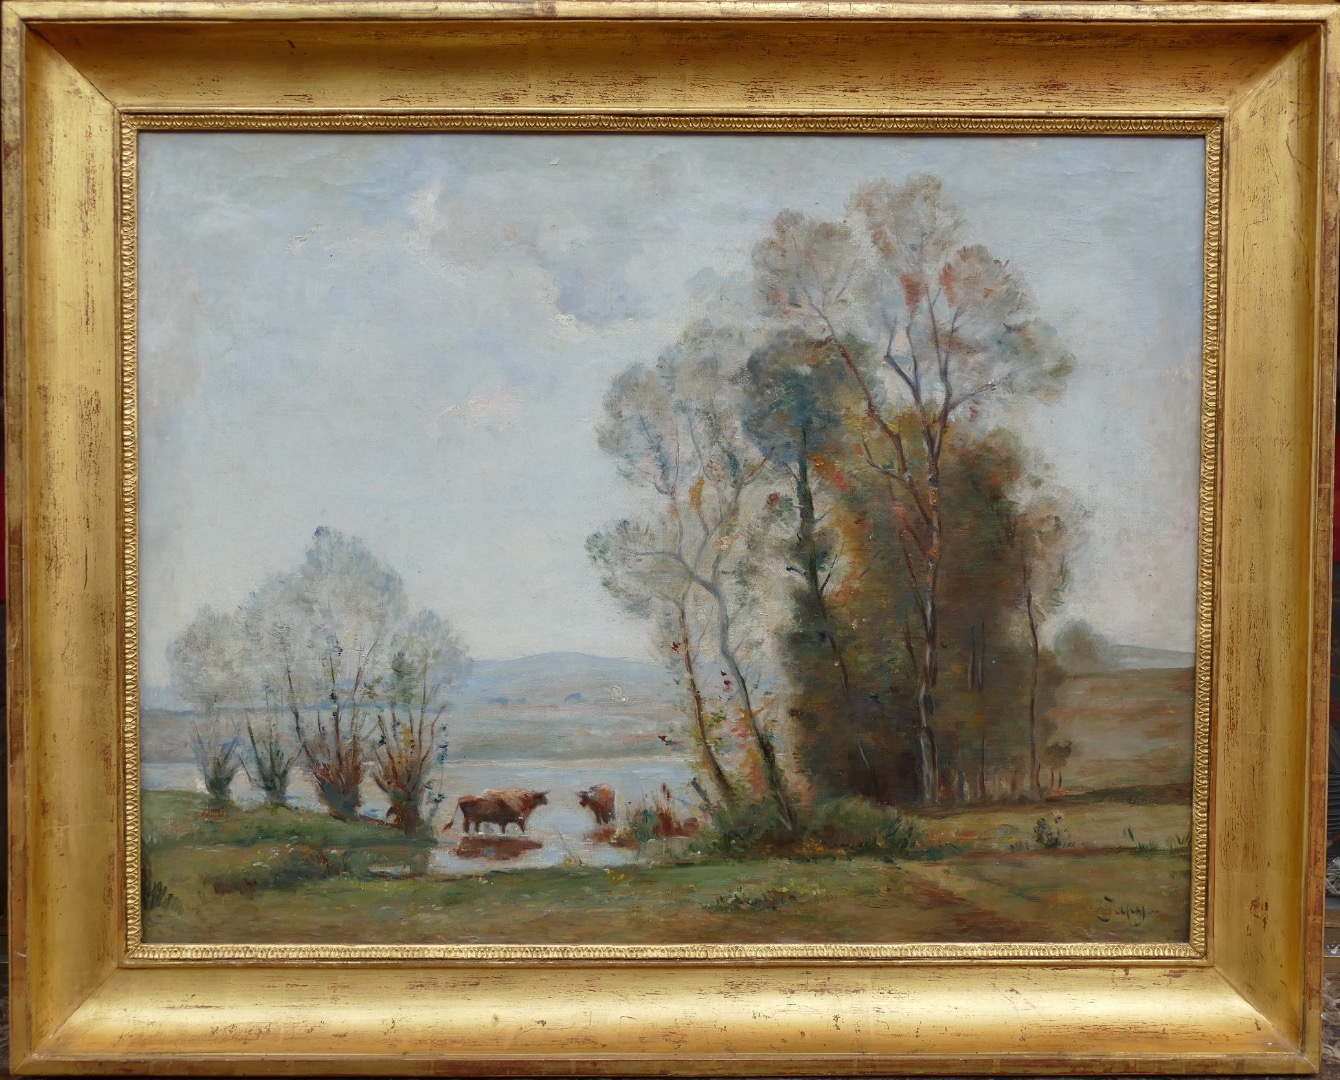 JAPY louis Aime ancient painting XIXth century Barbizon school oil on canvas signed the herd in the clearing